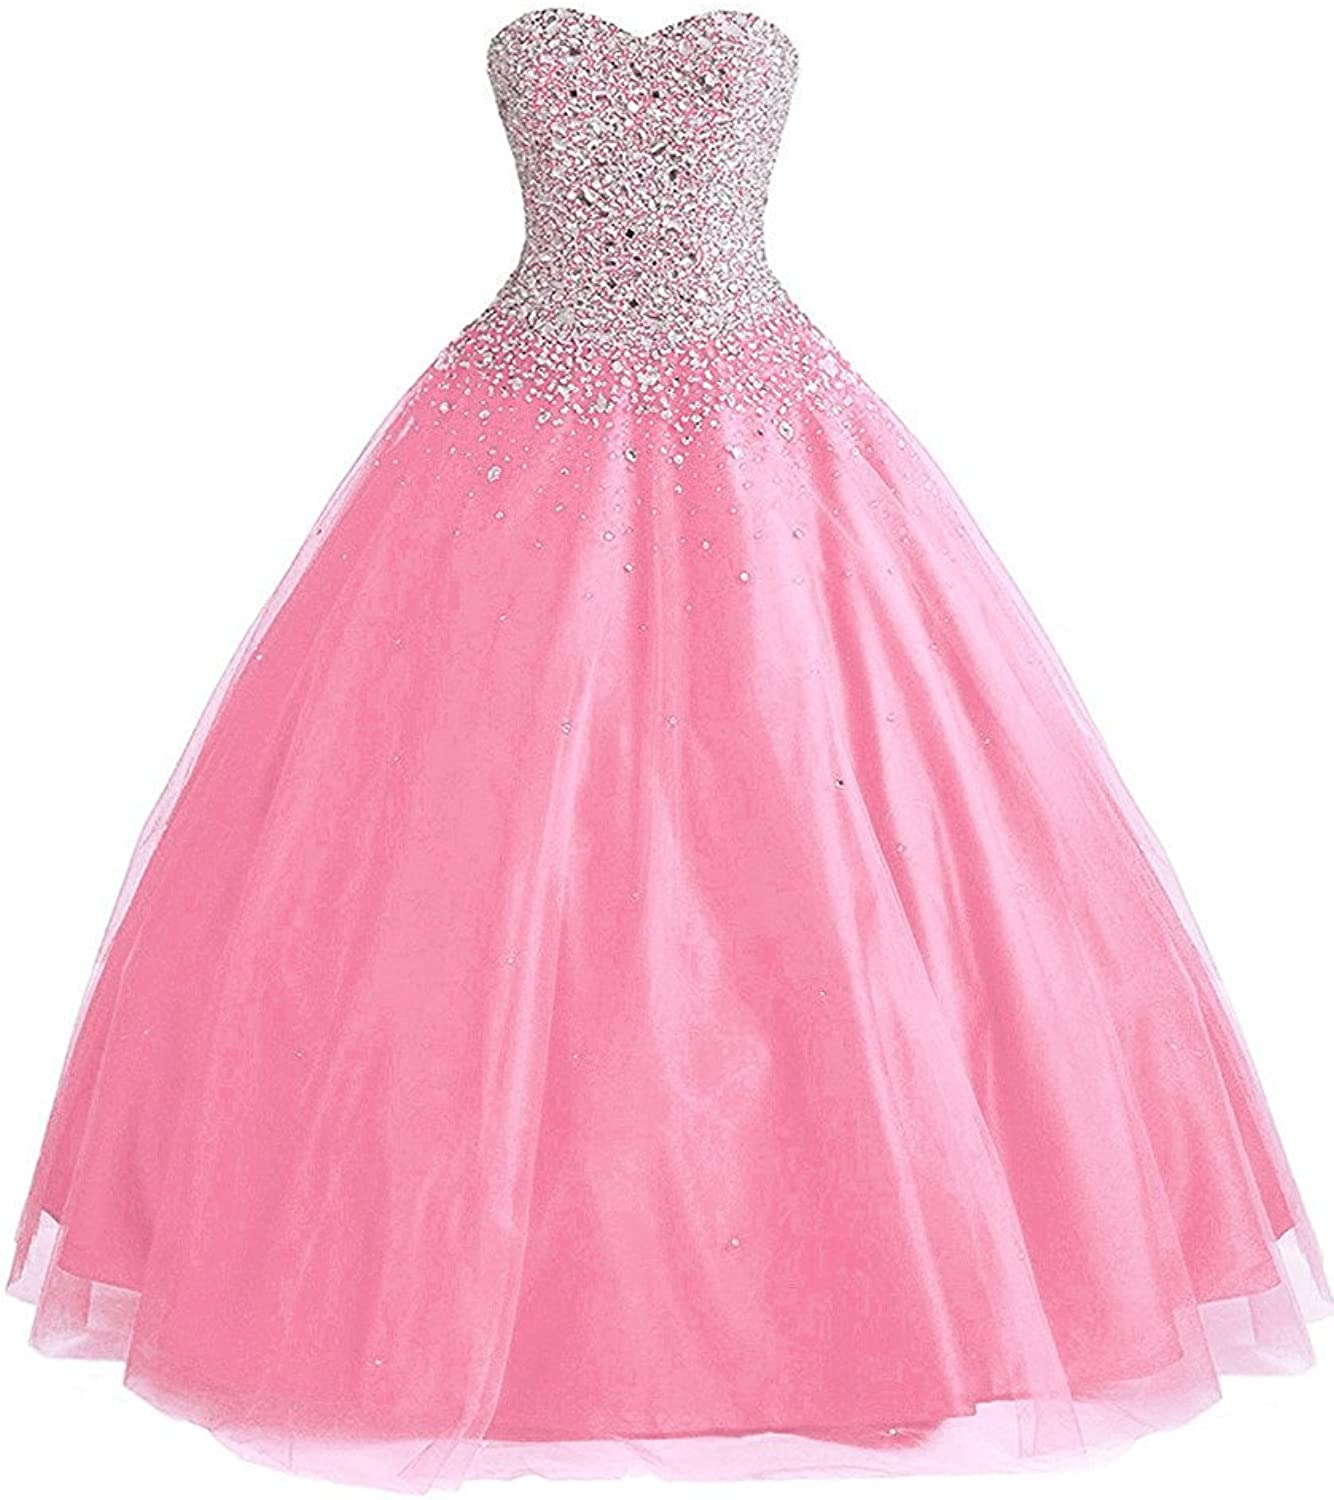 Yc Women's Tulle Beaded Ball Gown Sweet 16 Prom Quinceanera Dresses